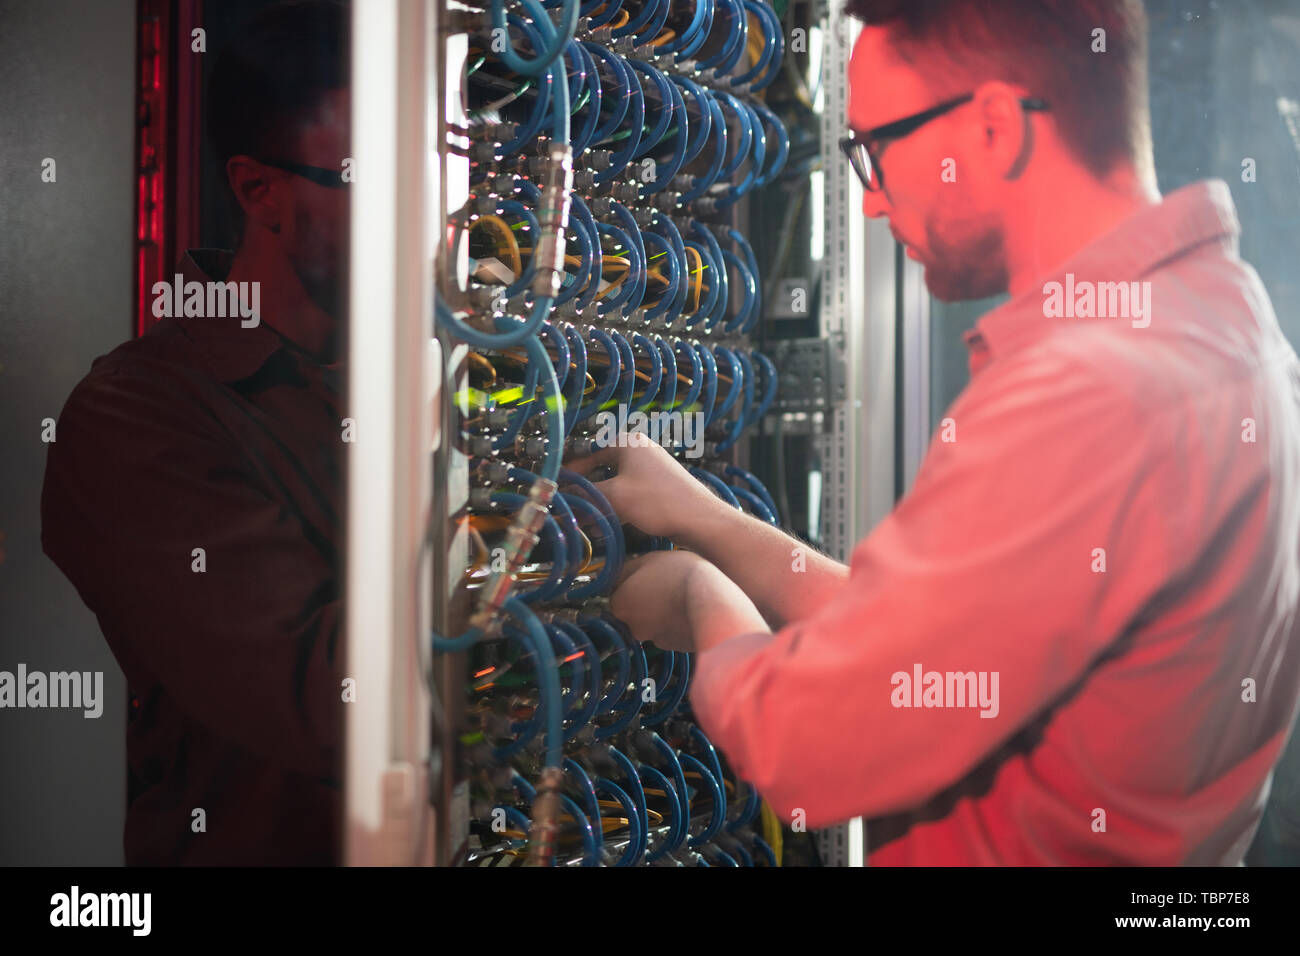 Serious busy young IT specialist in glasses standing by powerful mainframe and examining cables while maintaining networking system - Stock Image